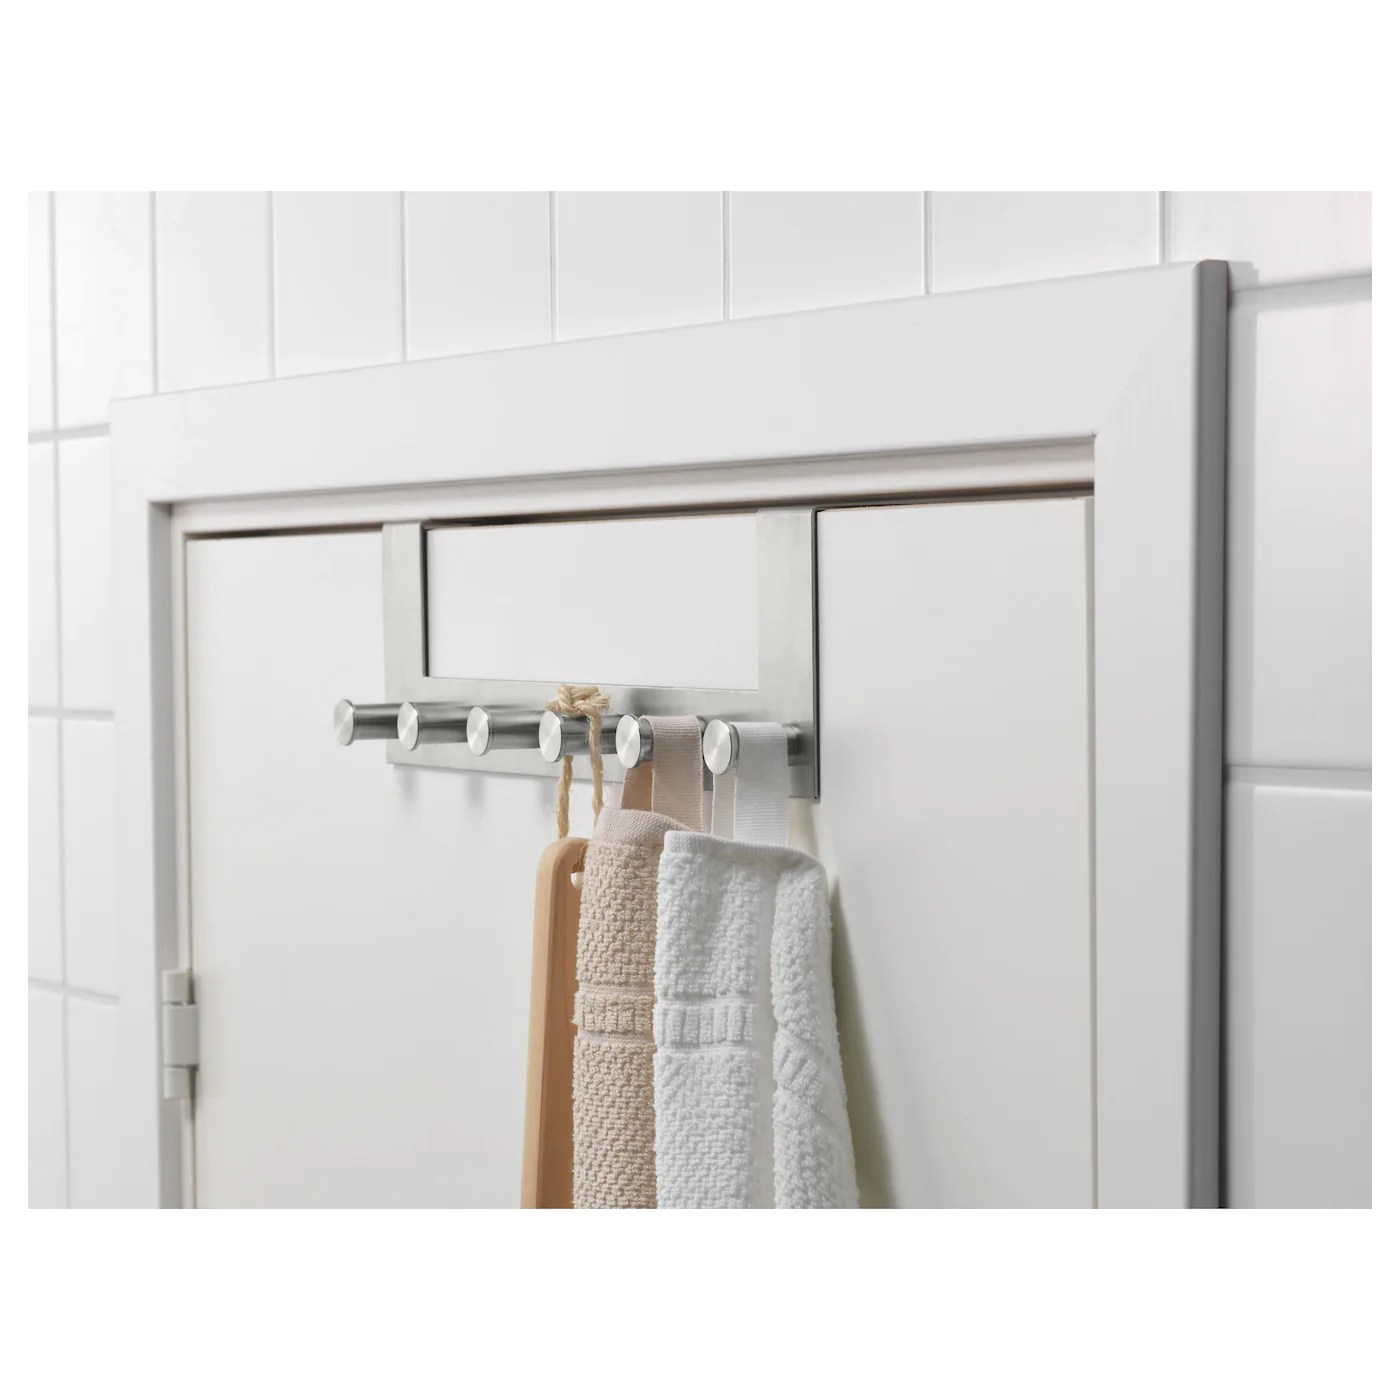 Grundtal Hanger For Door Stainless Steel Ikea